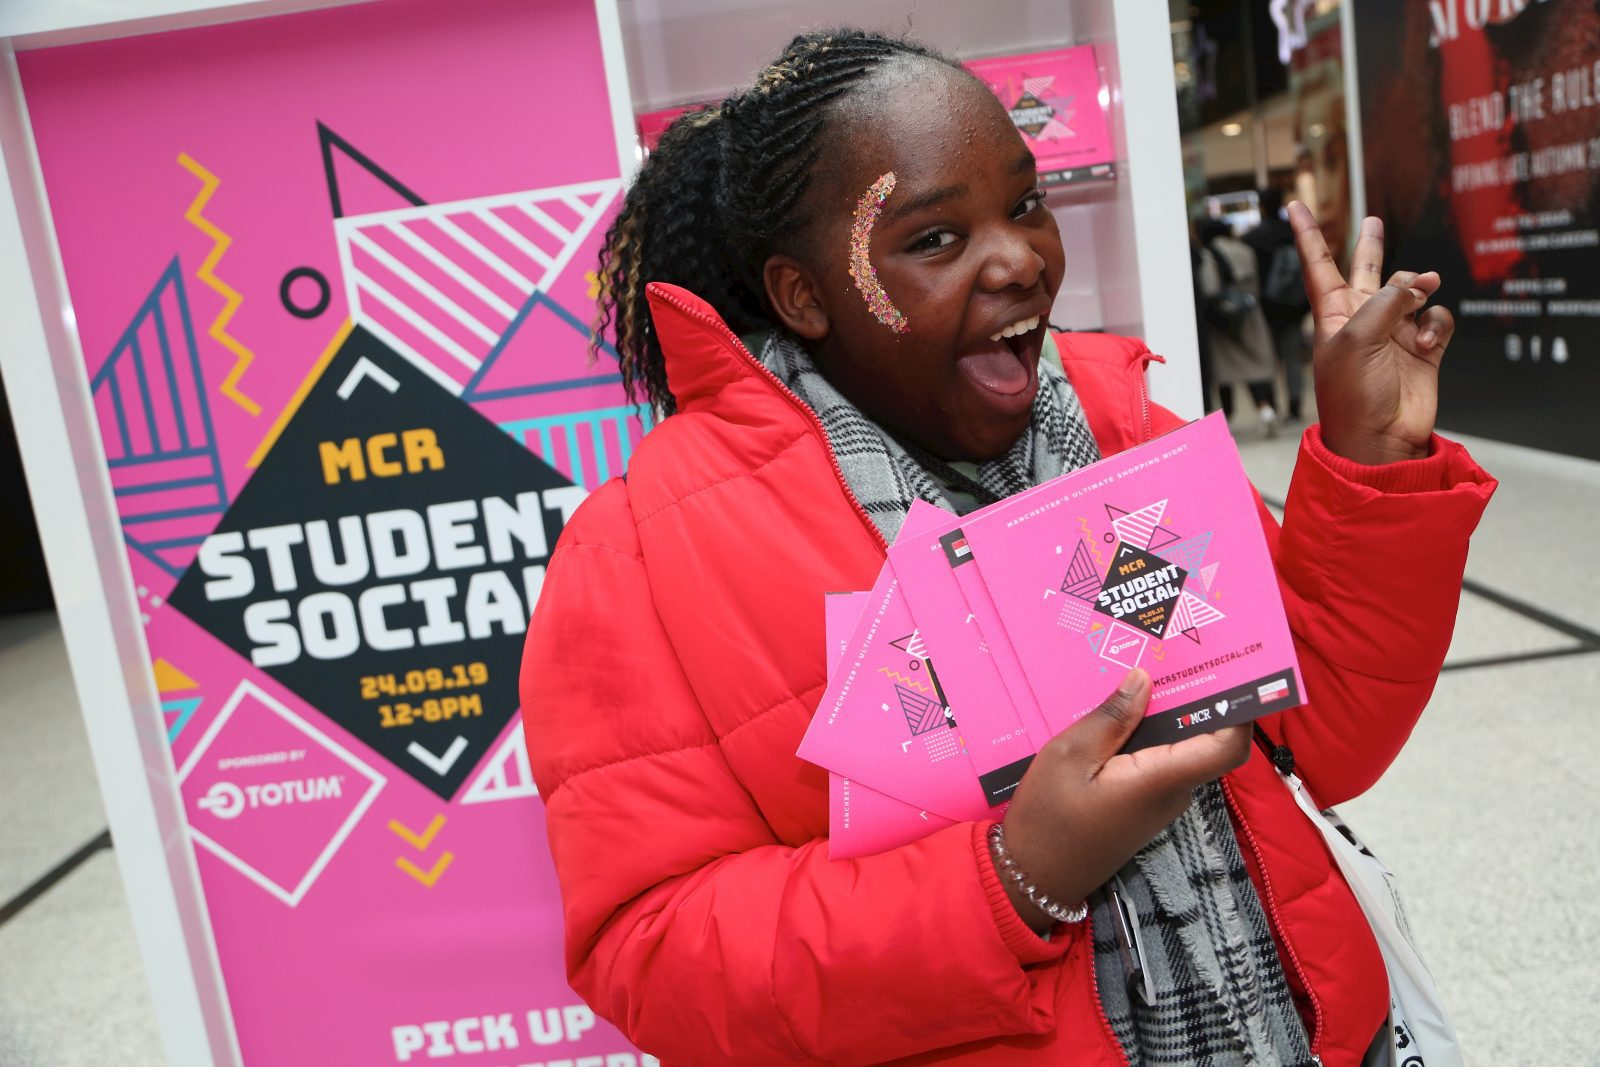 Manchester's biggest student shopping event returns with huge discounts this week, The Manc